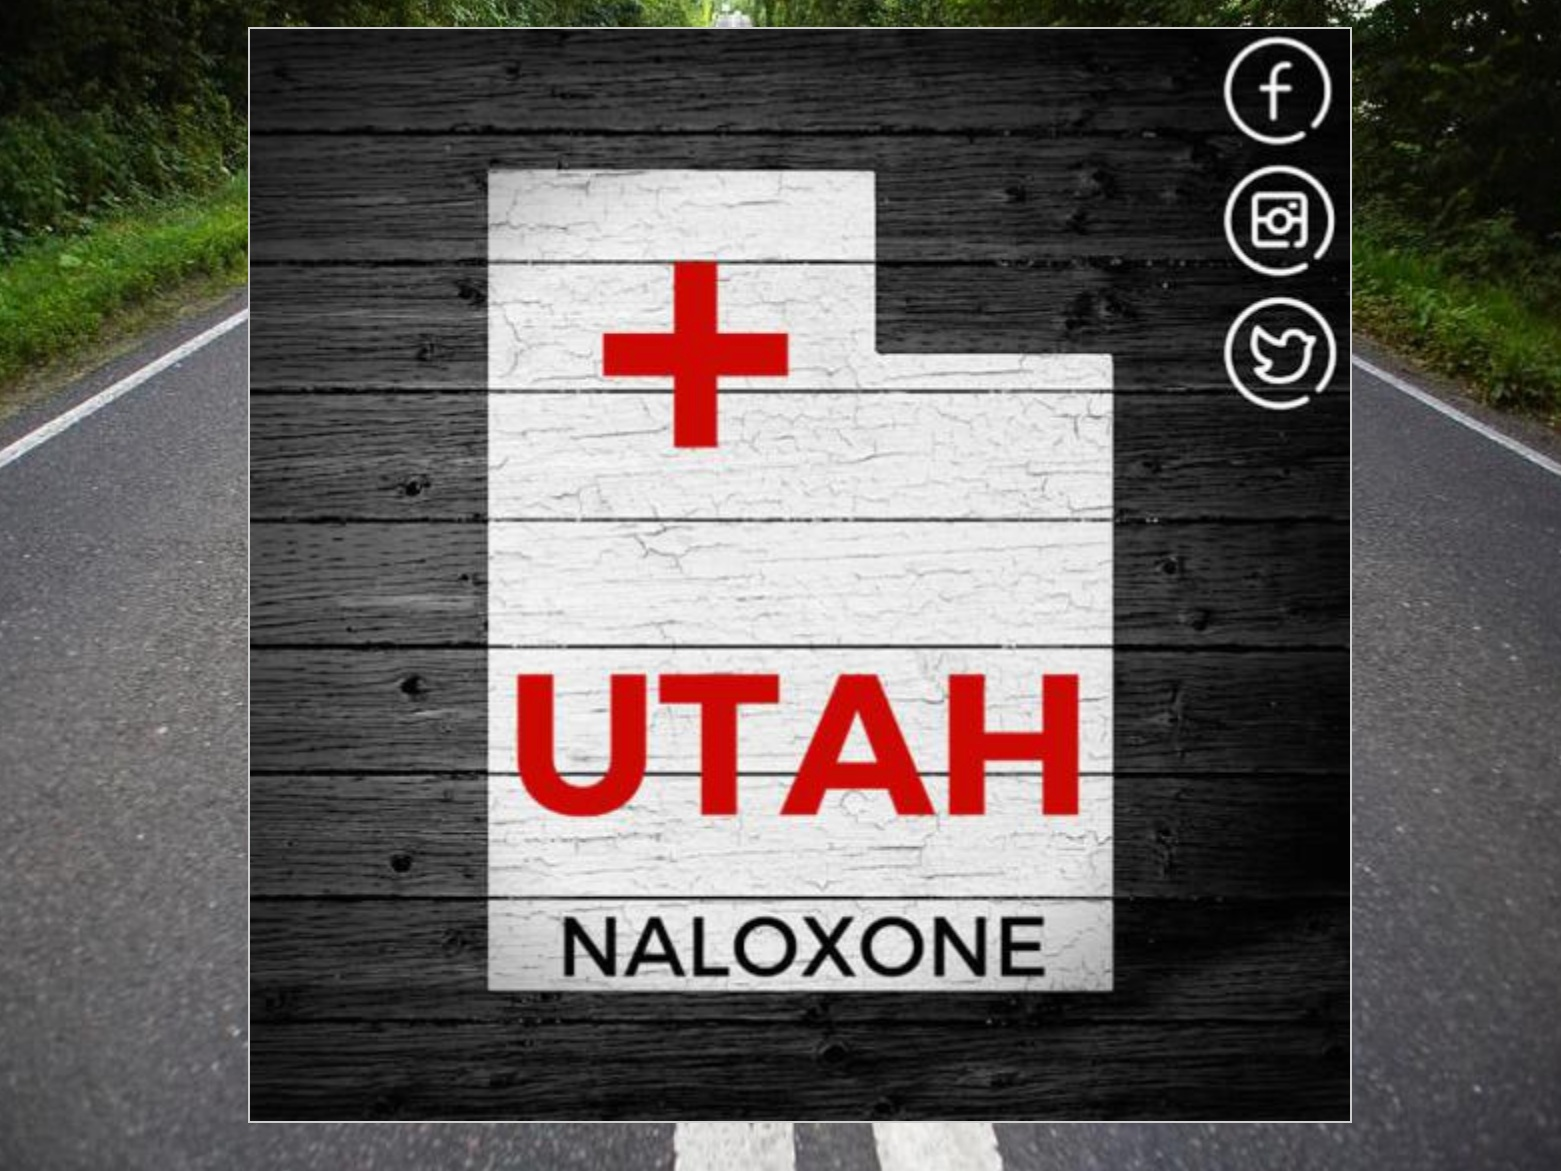 Utah Naloxone - Utah Naloxone is the leader in naloxone policy and distribution in Utah and runs the oldest mail-based naloxone organization in the country. Their website has training videos, background on layperson naloxone, an index of drug treatment providers, and information for prescribers. Utah Naloxone is the Utah program affiliate for NEXT Naloxone.